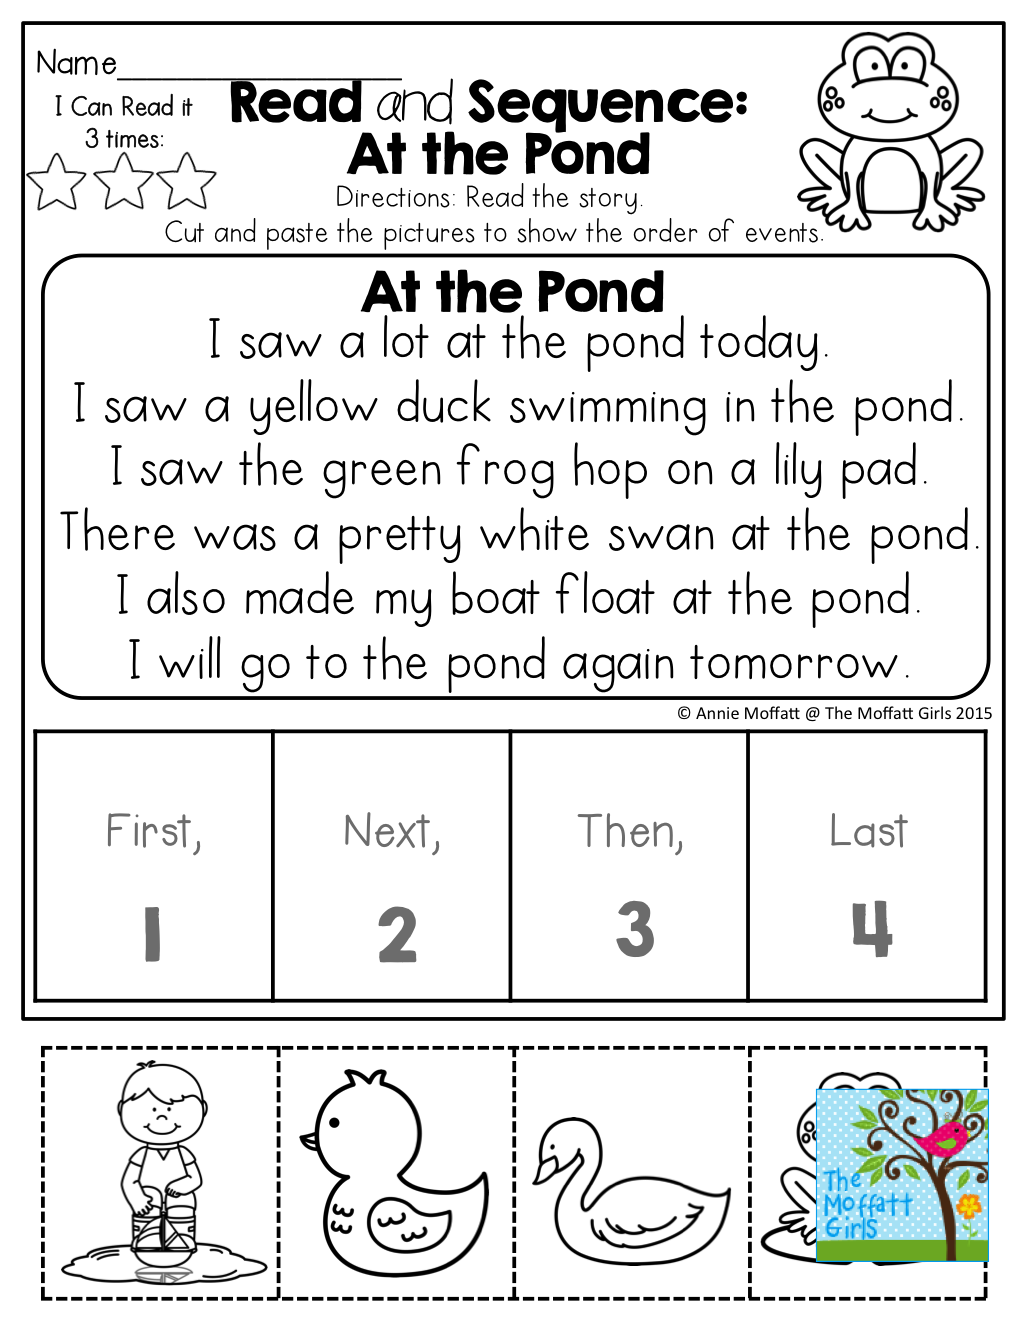 Read And Sequence! Read The Simple Story, Cut And Paste The